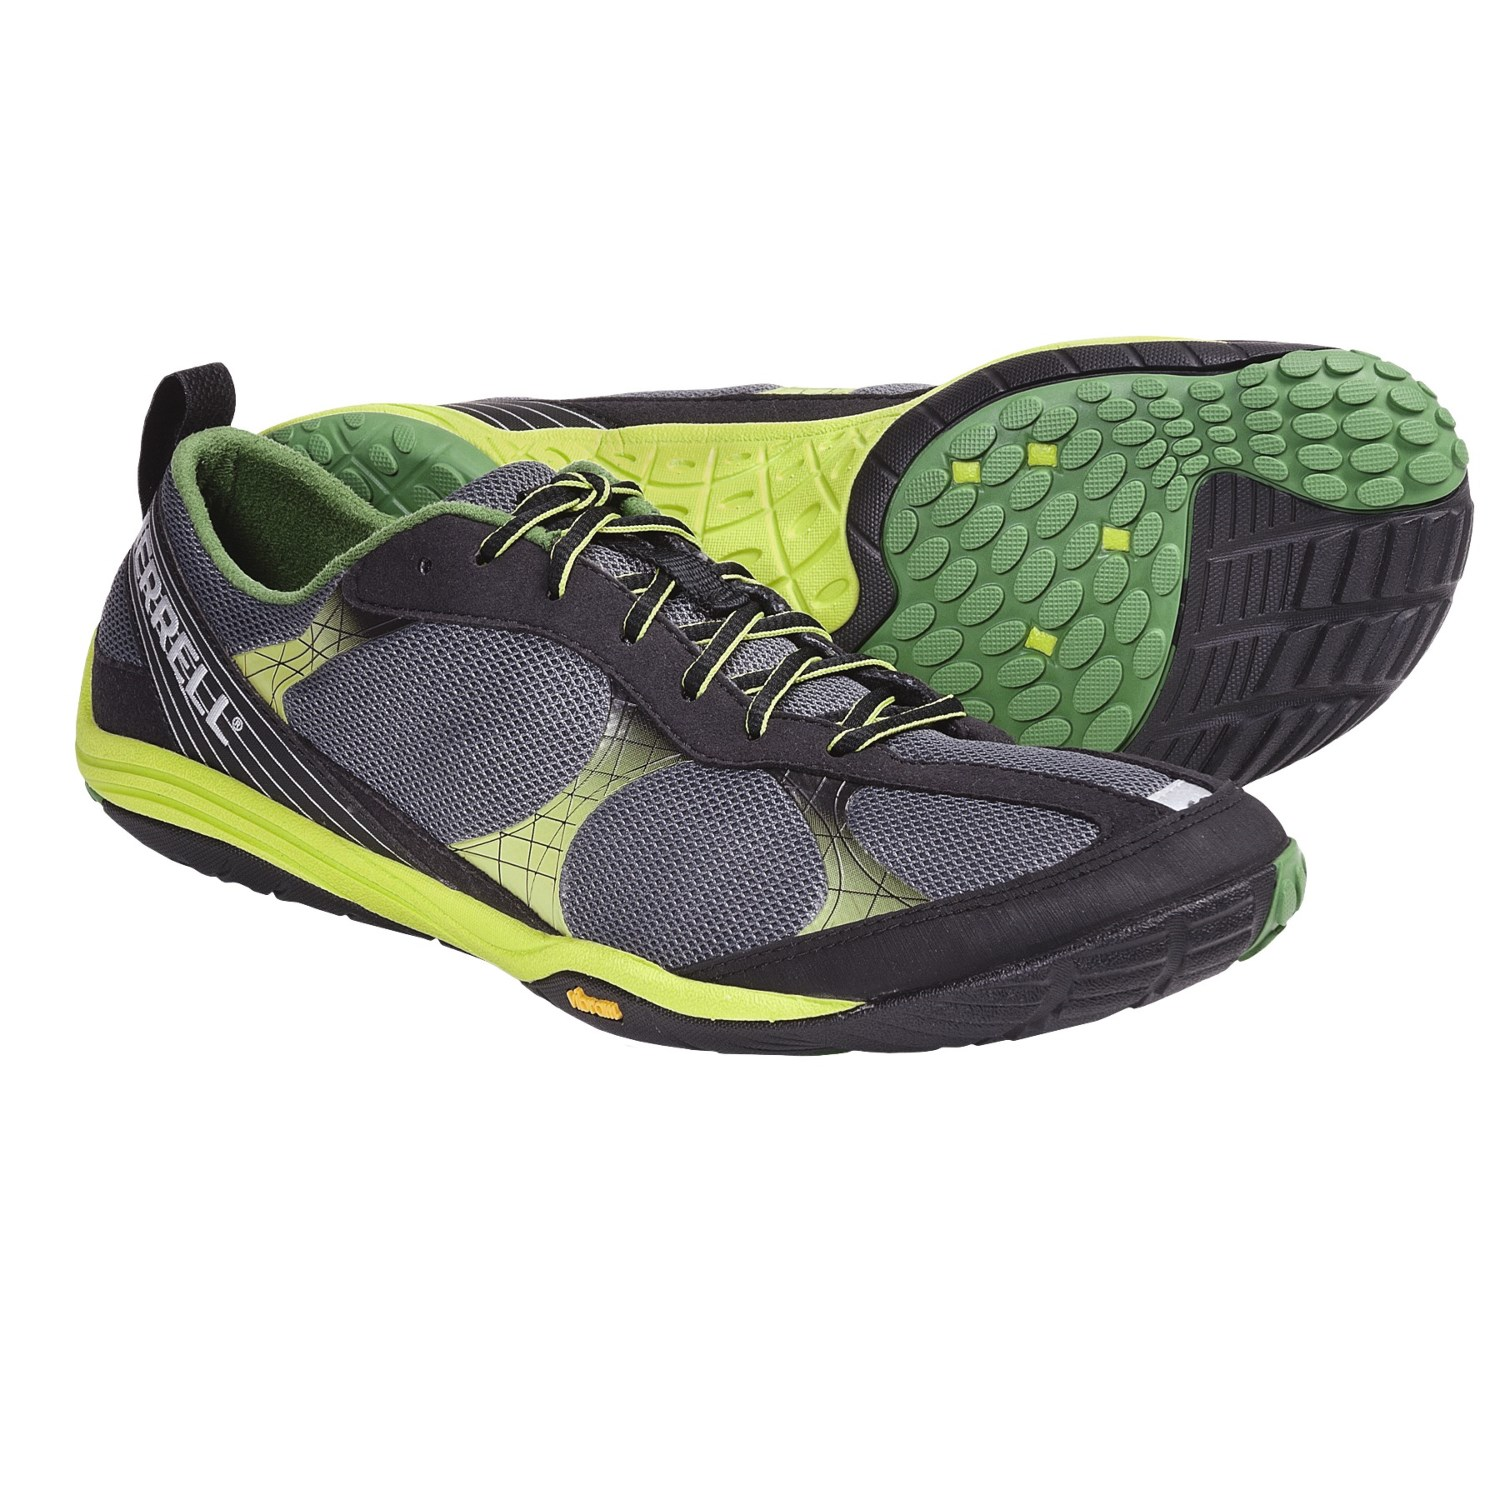 Best Minimalist Road Running Shoes